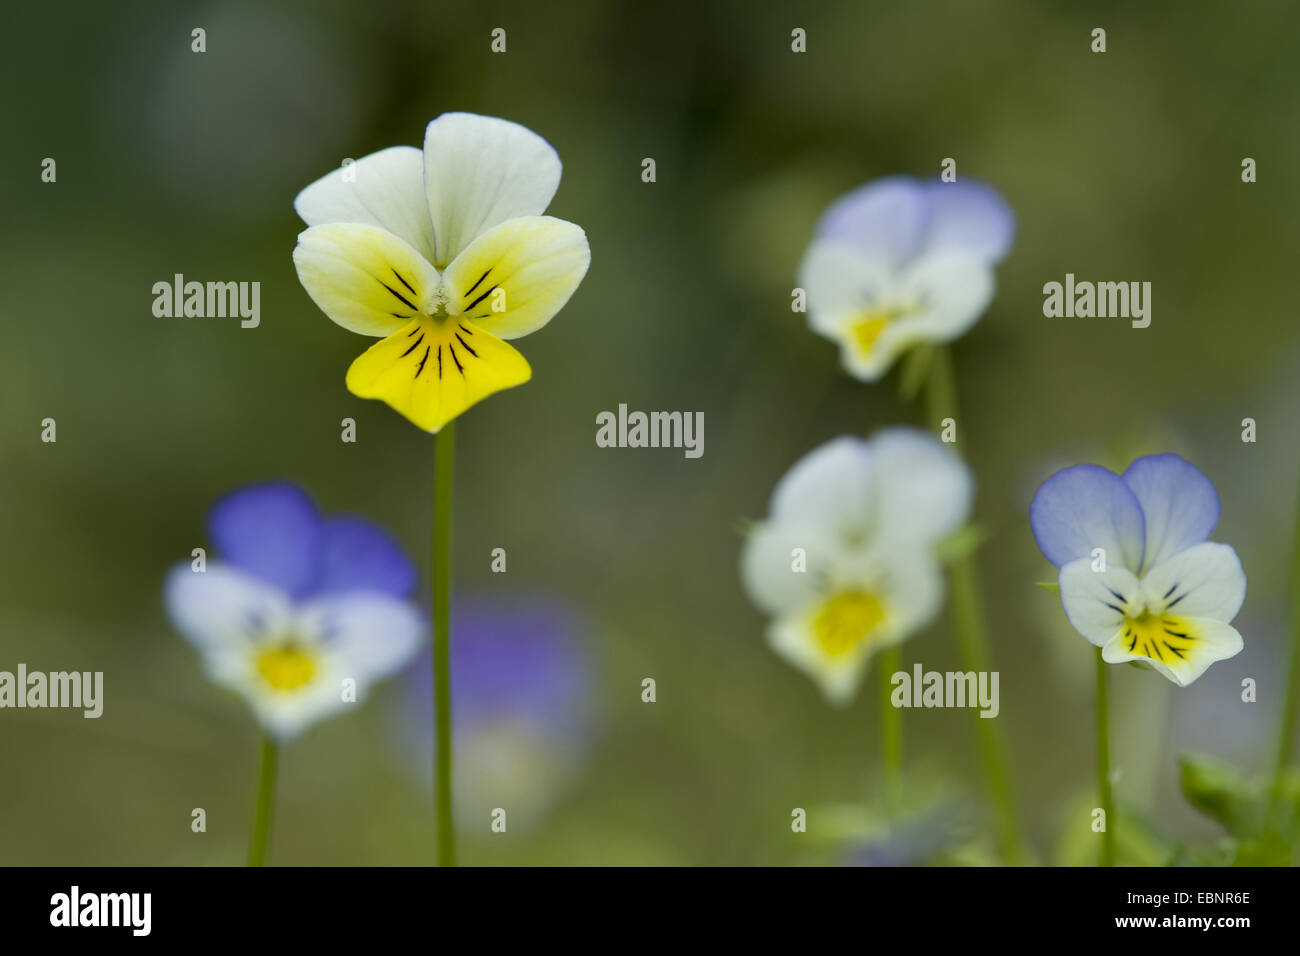 heart's ease, heartsease, wild pansy, three colored violet (Viola tricolor), blooming, Germany - Stock Image